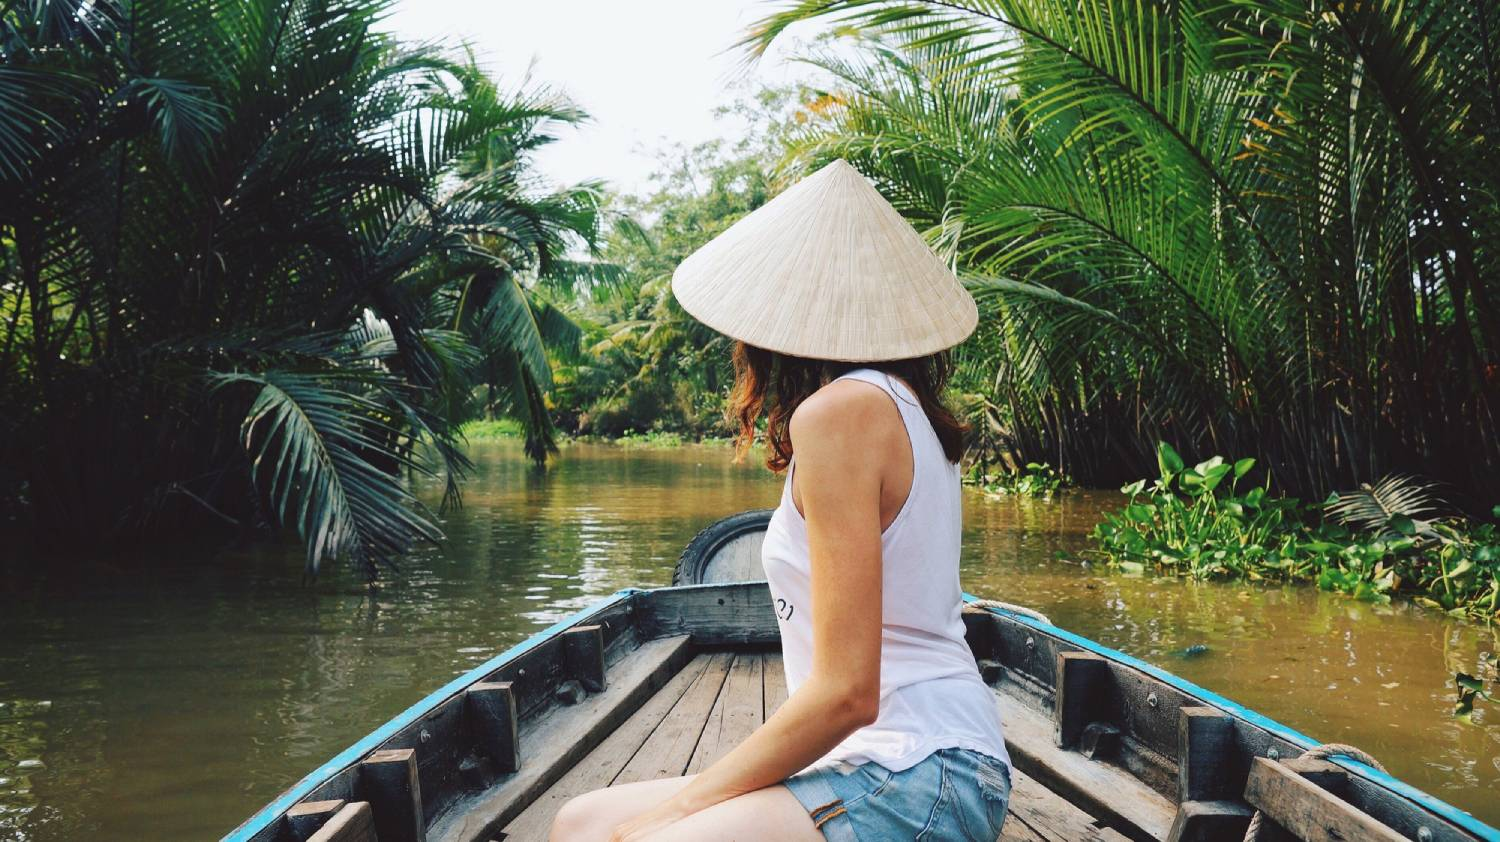 Mekong River - Things To Do In Ho Chi Minh City